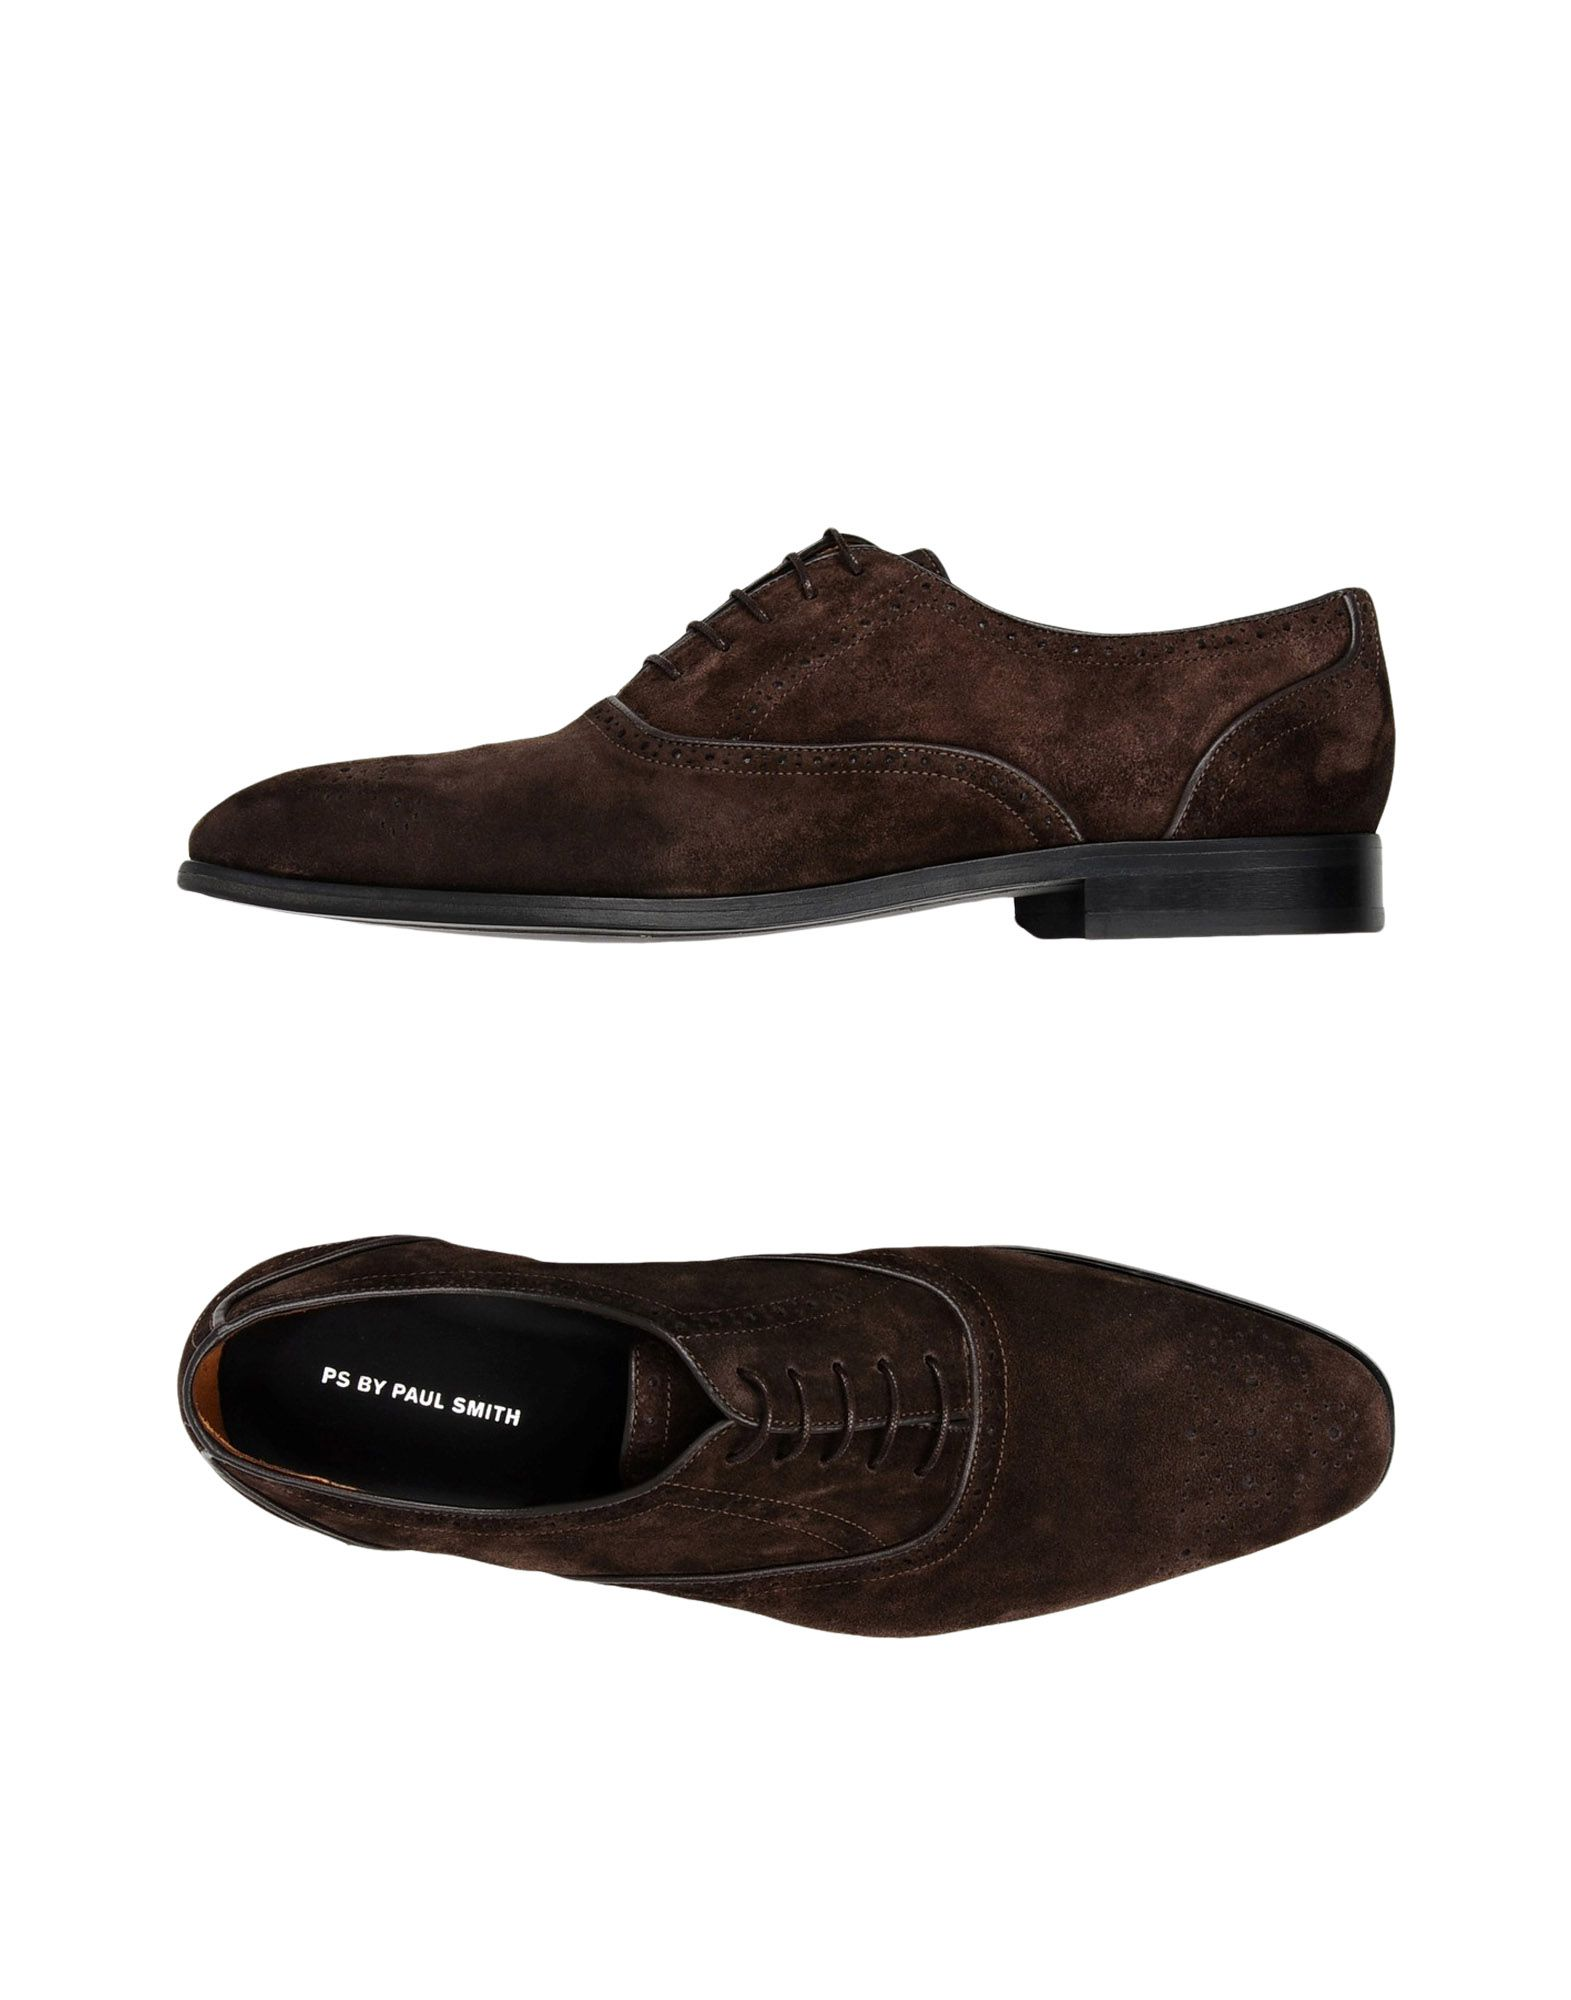 Stringate Ps By Paul Smith Mens Shoe Gilbert Dar - Uomo - 11312721PN